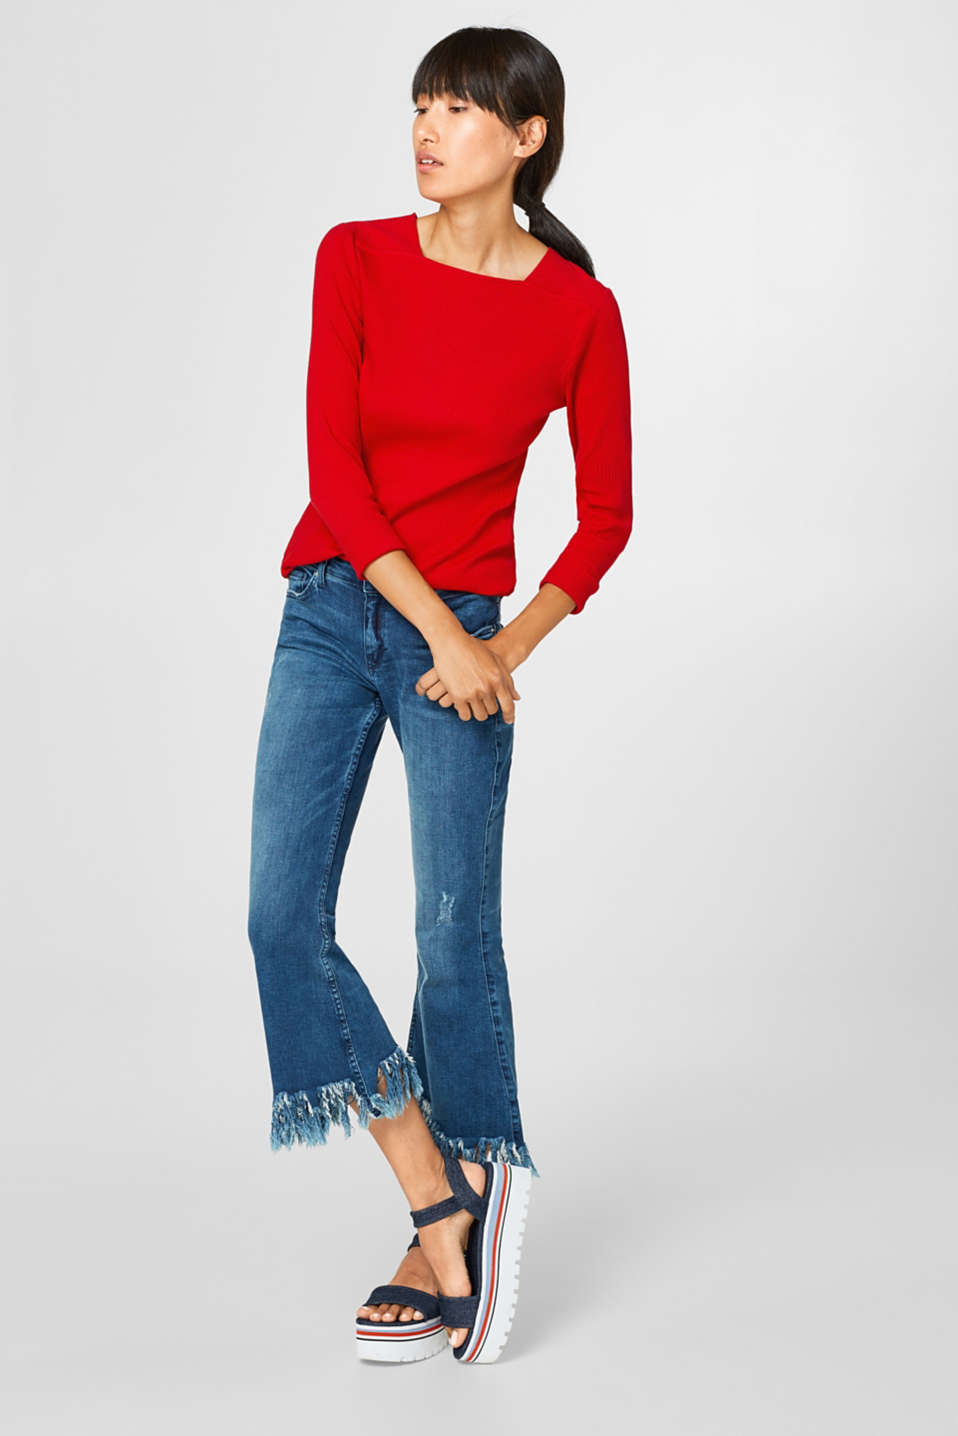 Ribbed long sleeve top + square neckline